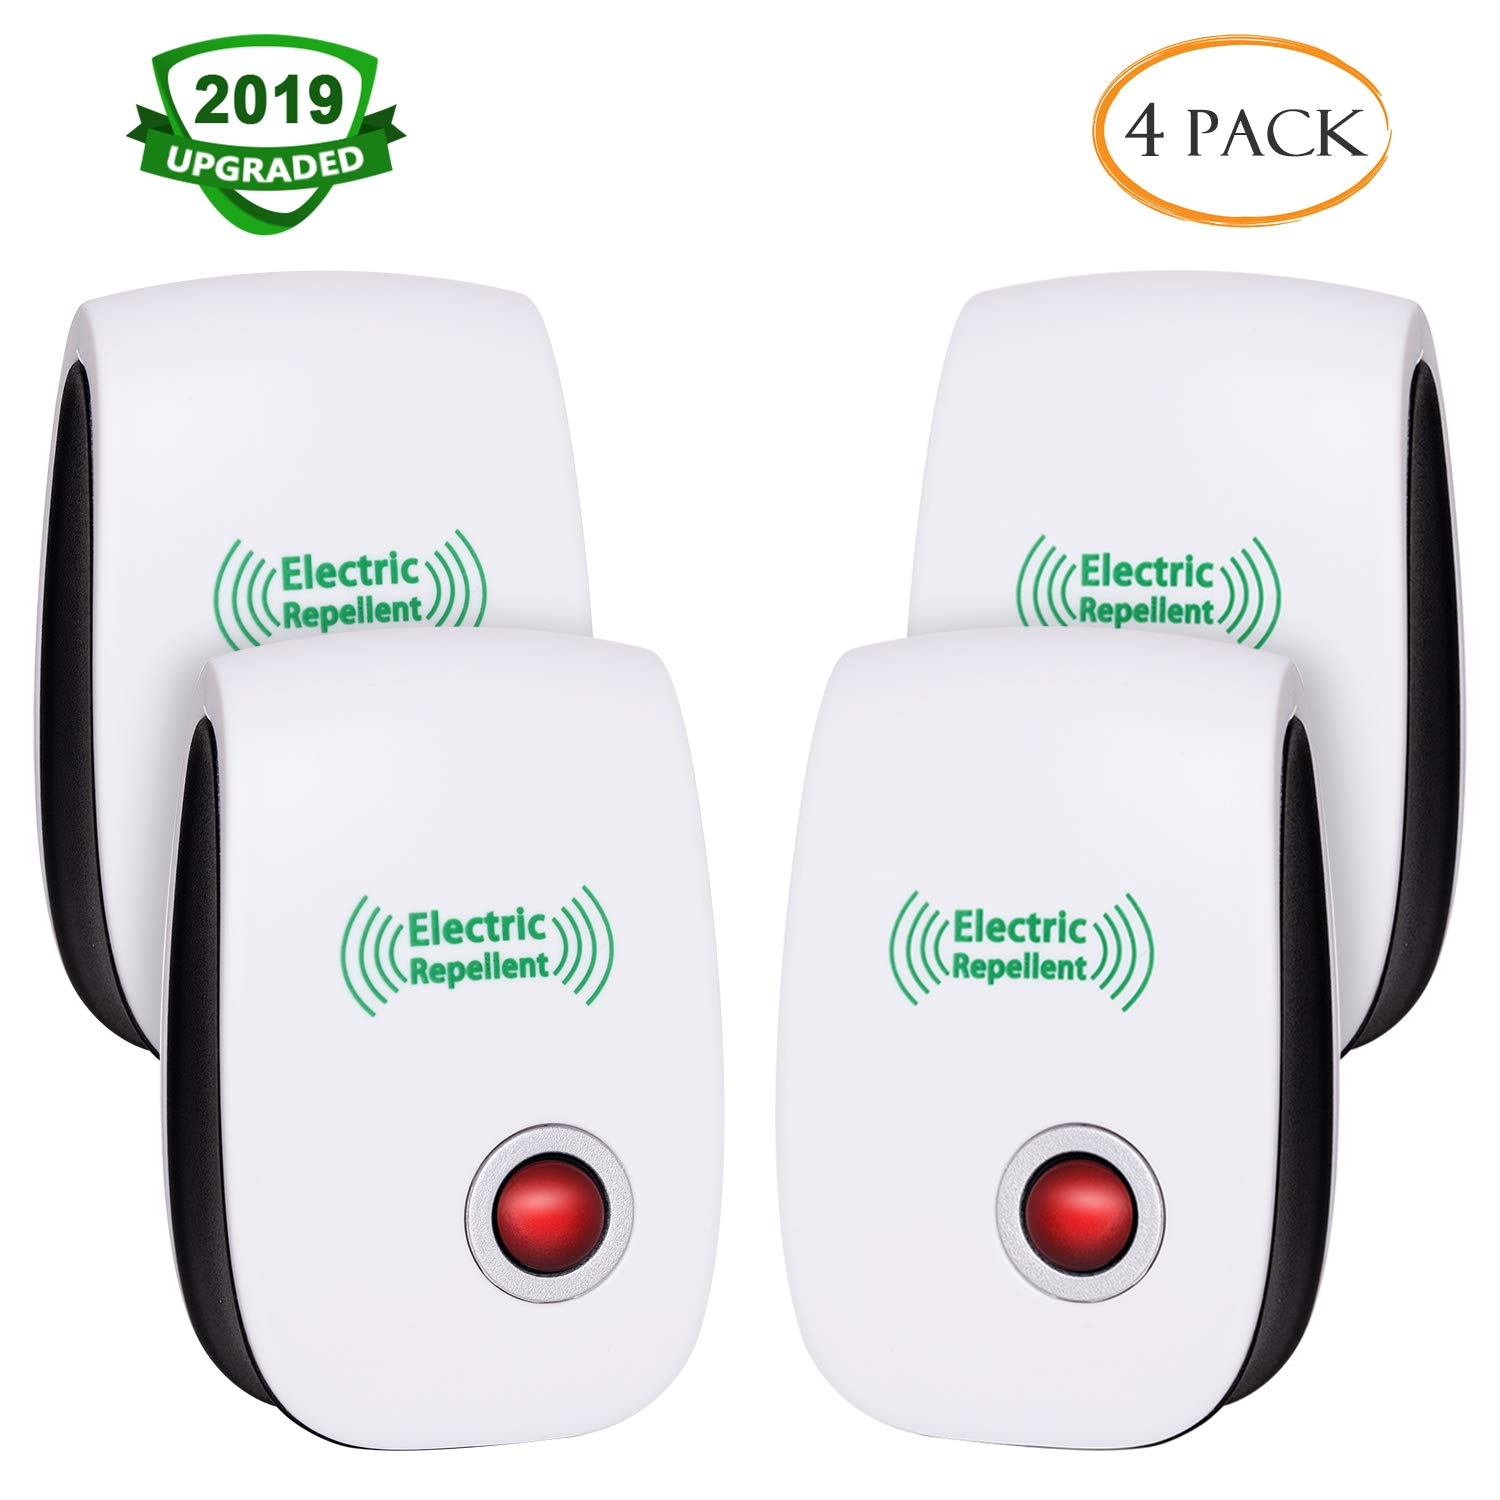 CIVPOWER 2019 Upgraded Ultrasonic Electronic Repellent, Pest Control Repeller Plug in Indoor Usage, Best Pest Controller to Bugs, Insects Mice, Ants, Mosquitoes, Spiders, Rodents and Roach(4 Packs) by CIVPOWER